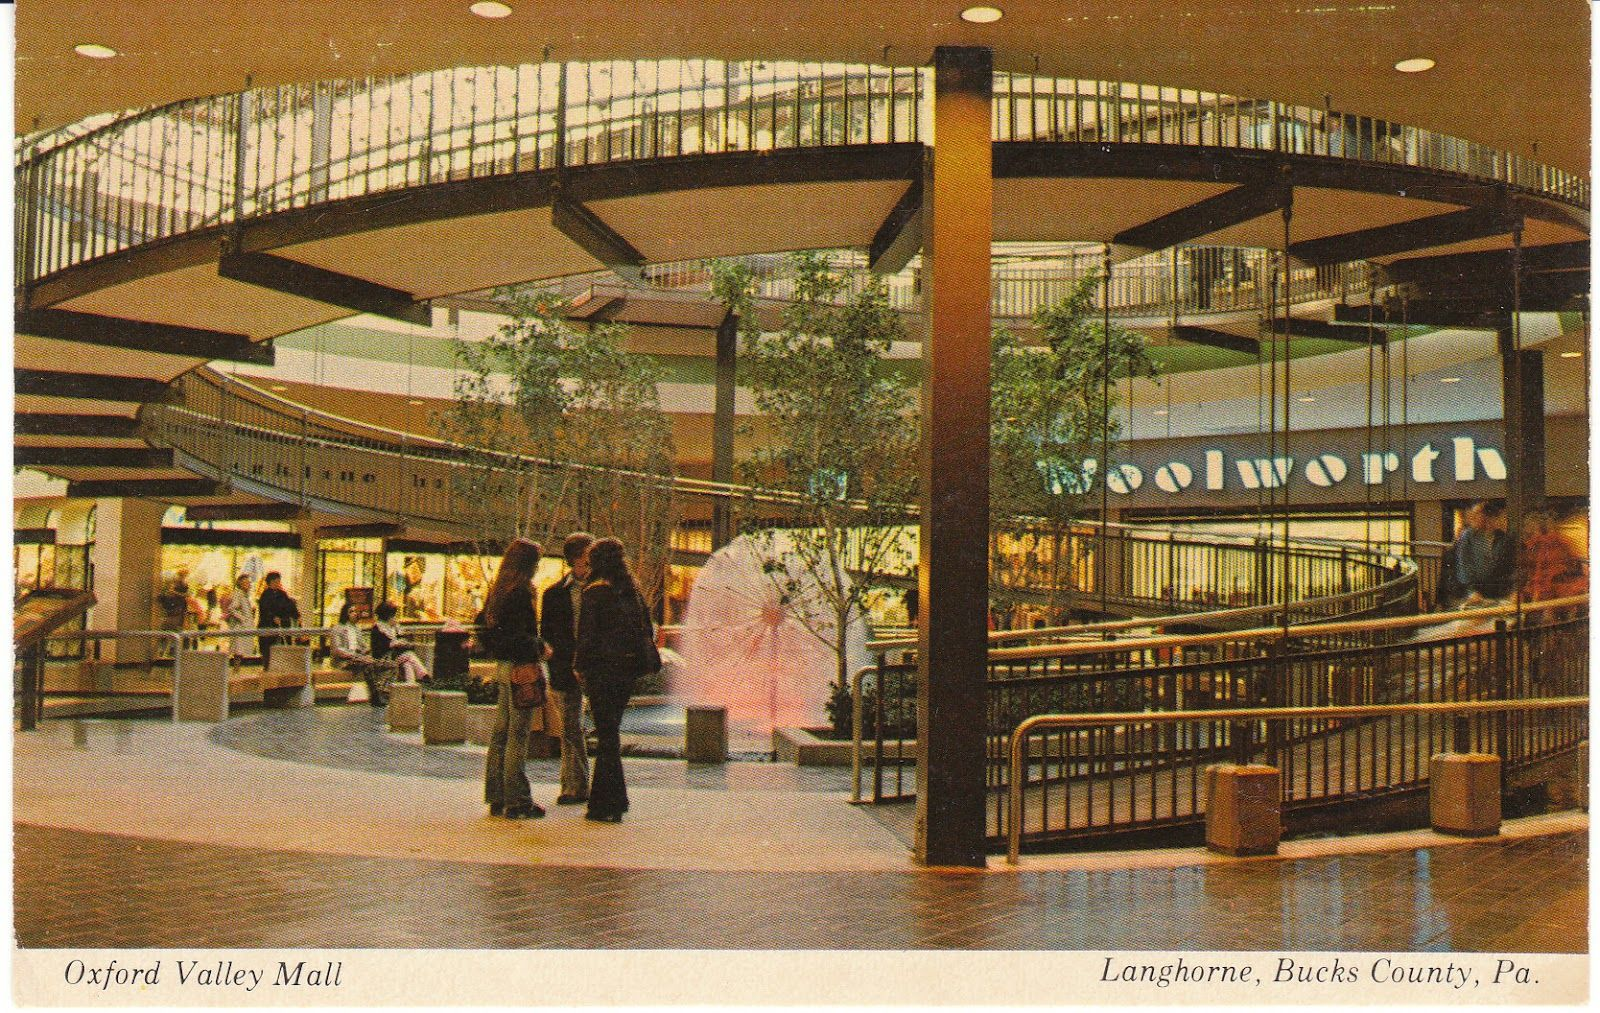 7ffb7e67d Just talked about this ramp tonight reminiscing with friends! Oxford Valley  Mall back in the day